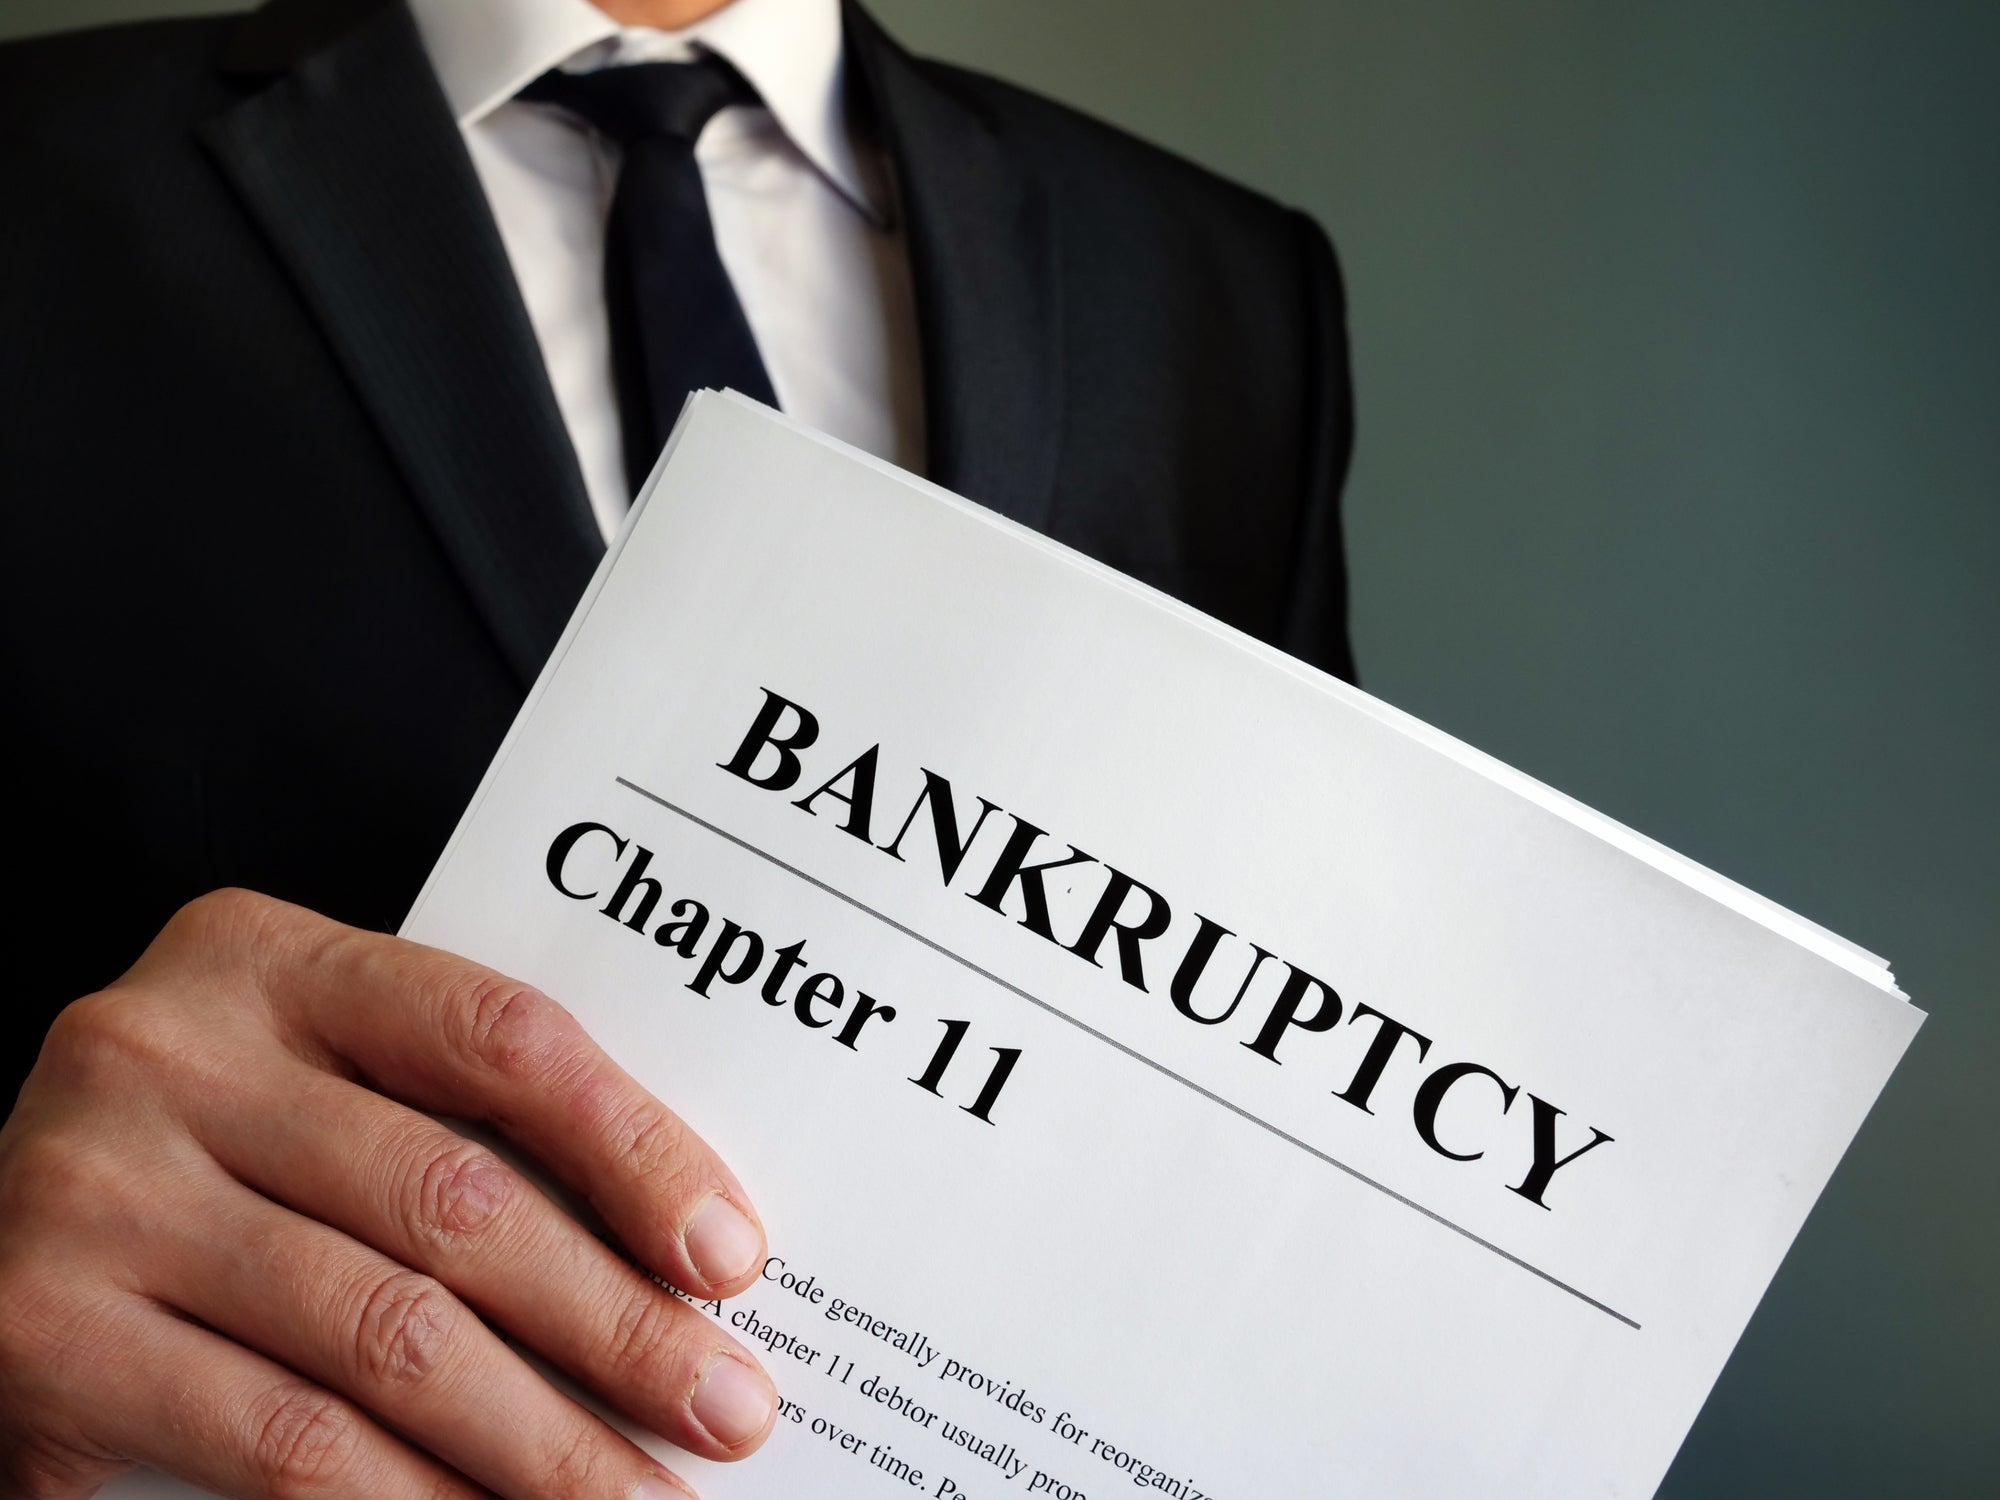 Oasis Petroleum Files for Chapter 11 Bankruptcy | The Motley Fool